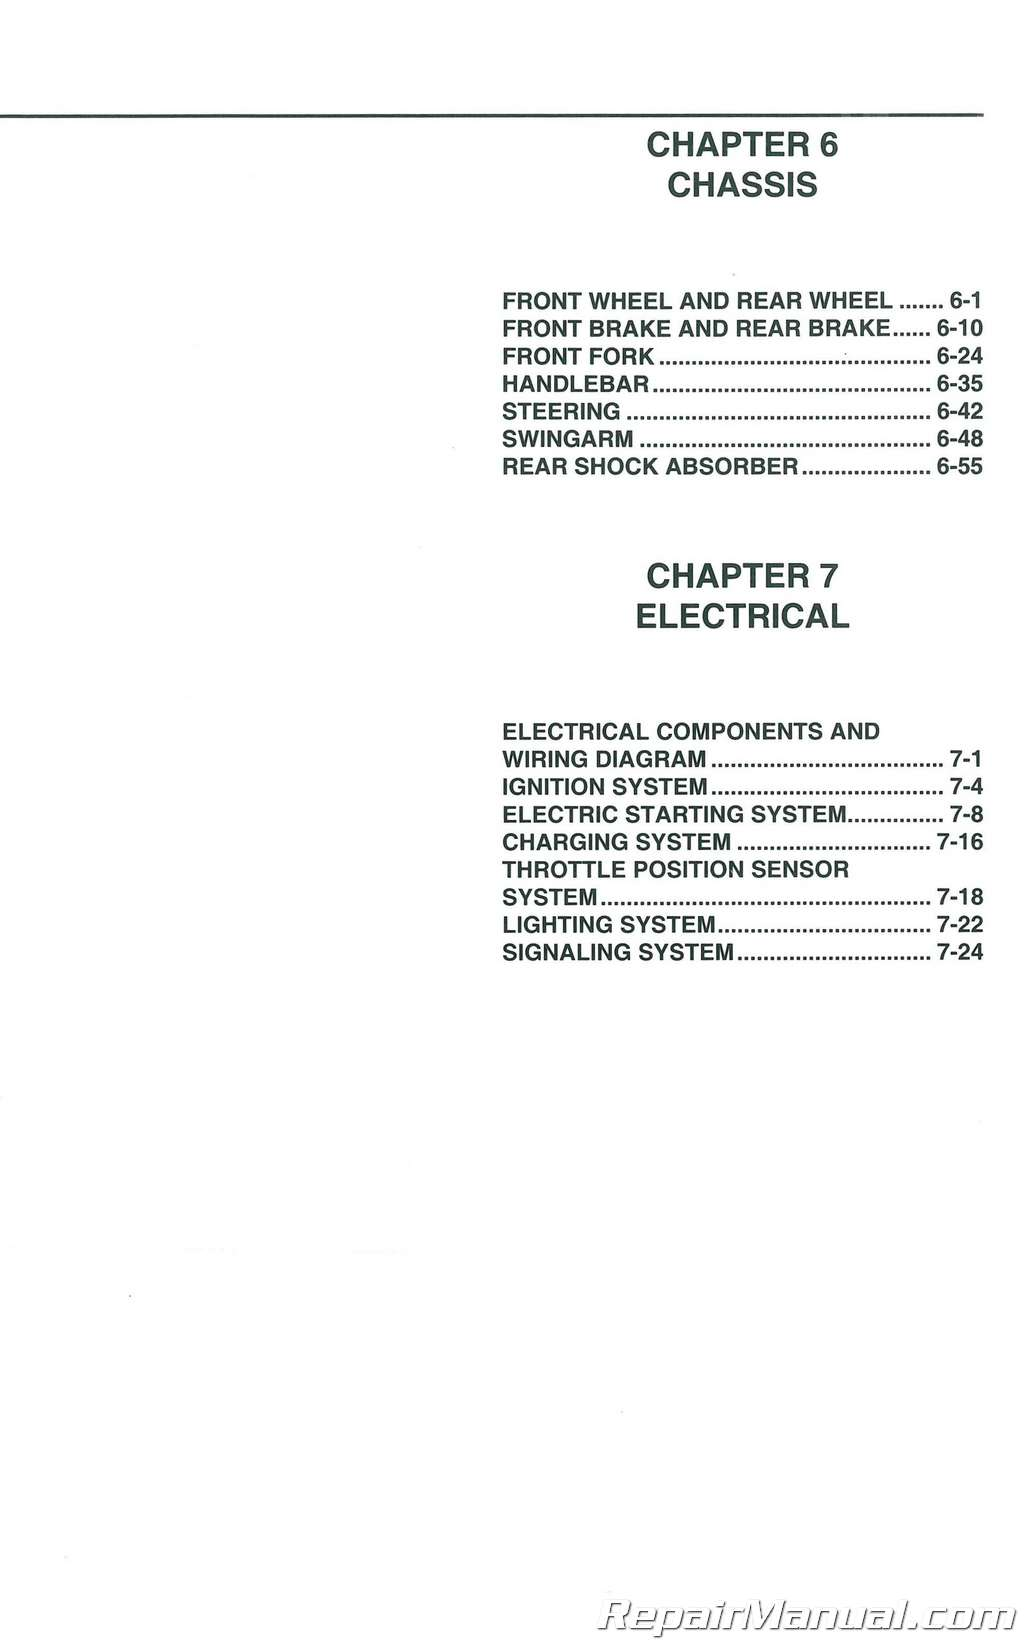 ignition wiring diagram for yamaha wr250f trusted wiring diagram yamaha 250 wiring diagram used 2008 yamaha wr250f motorcycle owners service manual ebay yamaha starter wiring ignition wiring diagram for yamaha wr250f